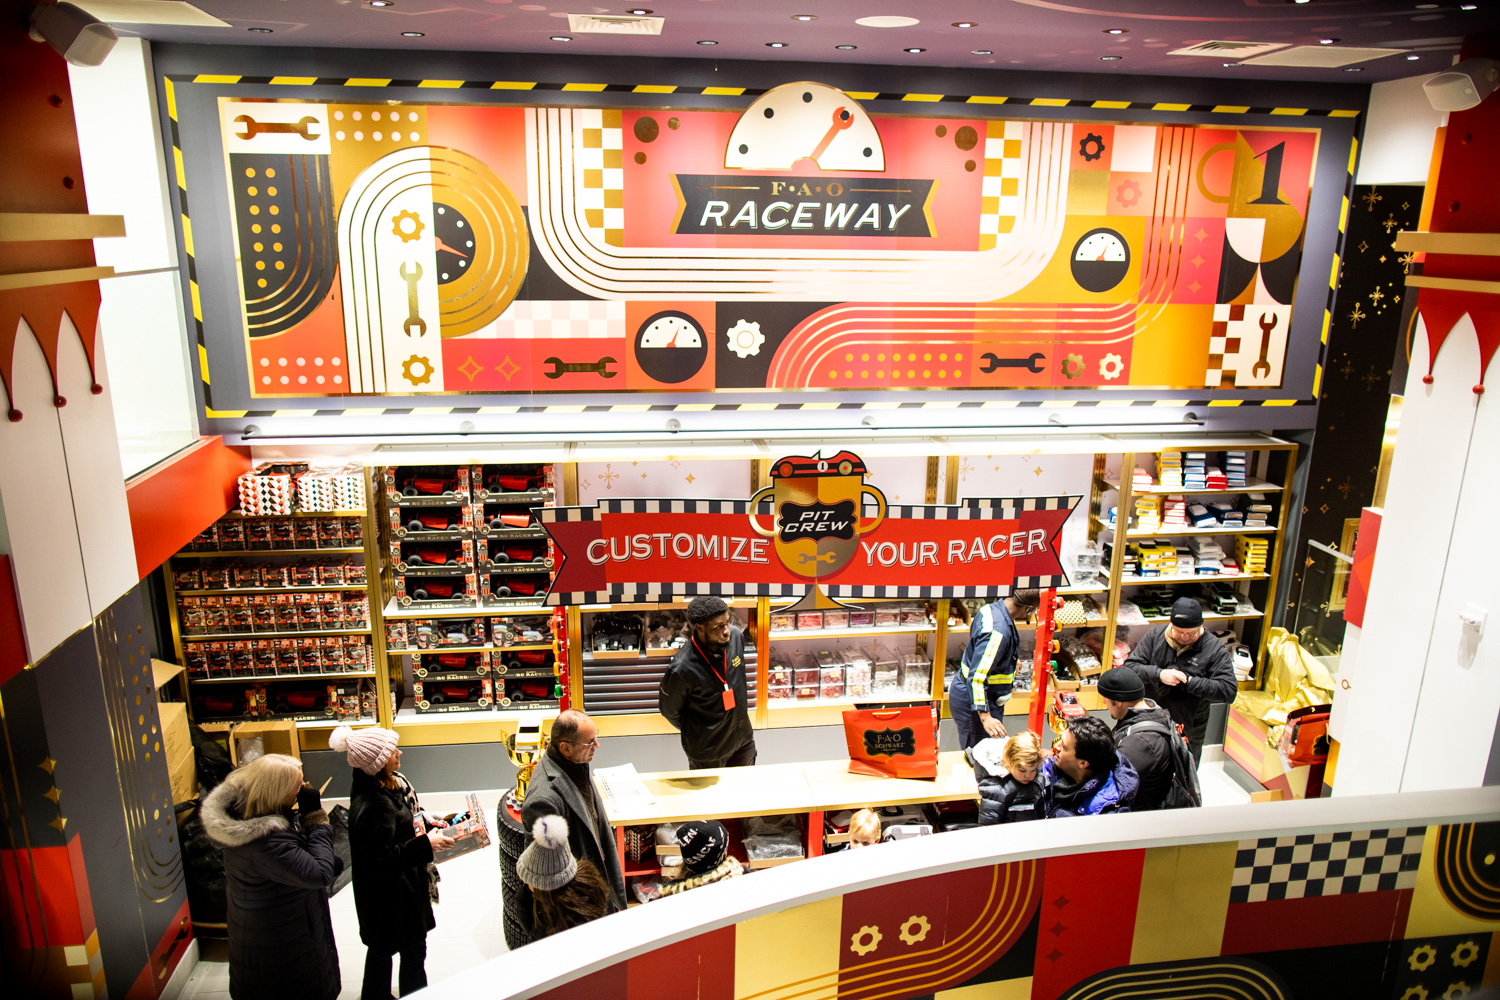 The racing station at FAO Schwarz. Customize your racer!